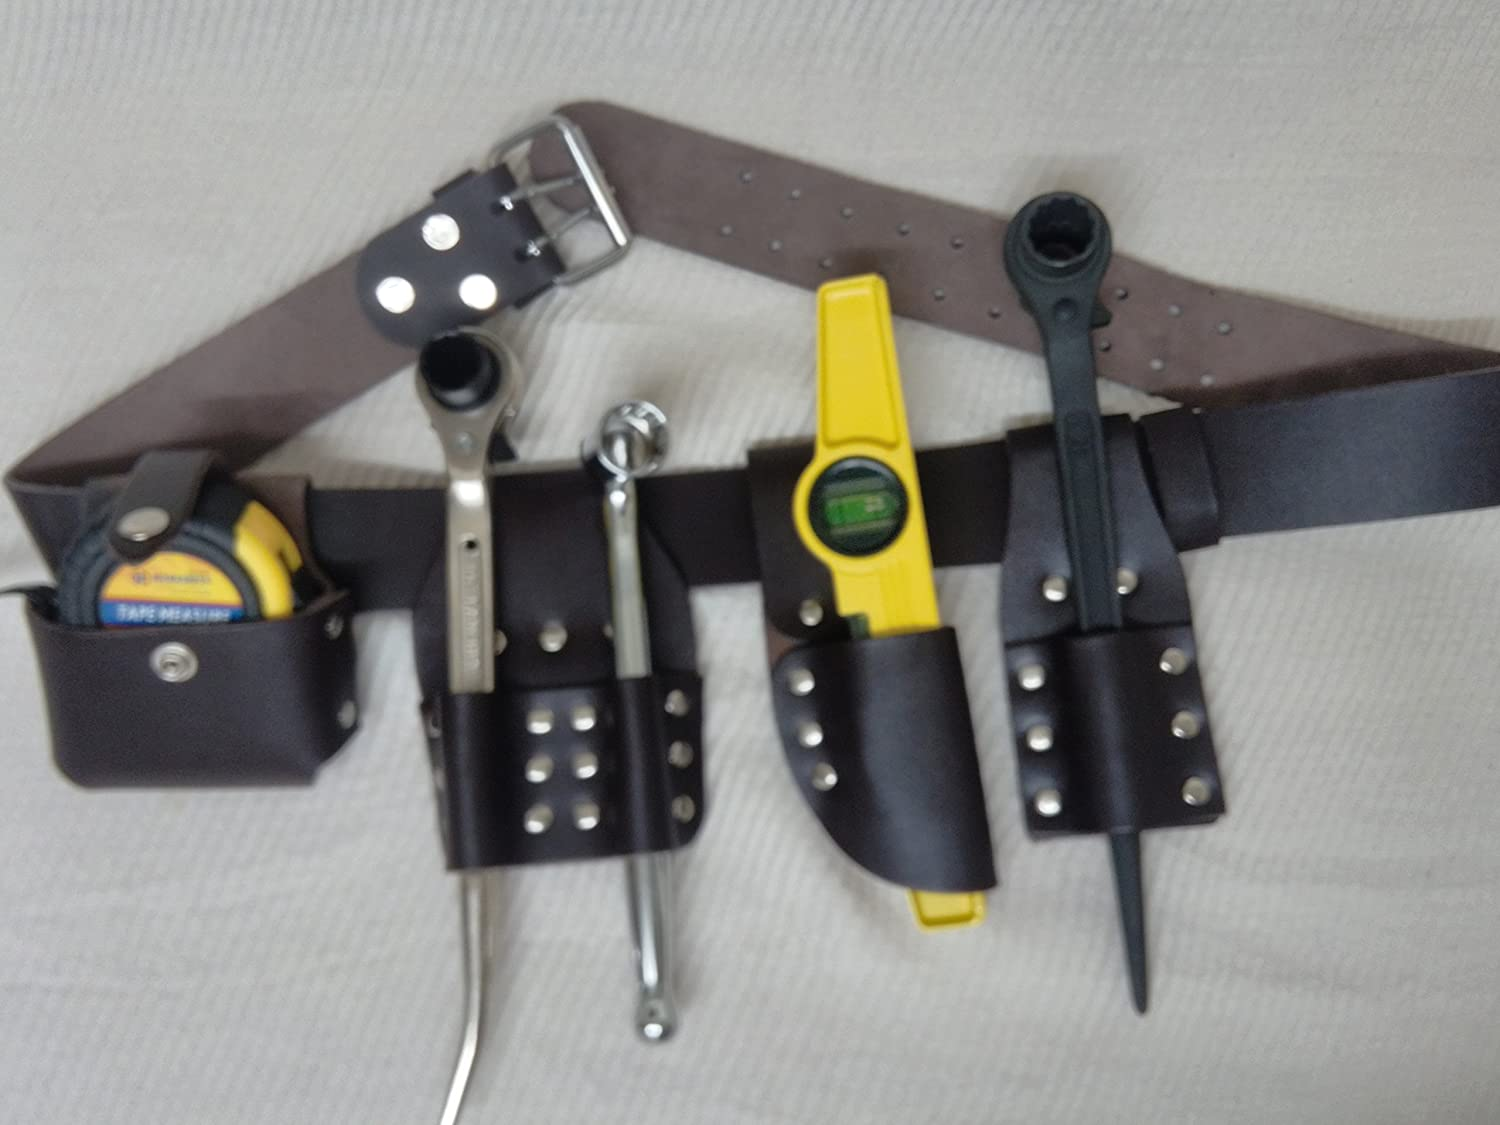 New Edition Scaffolding Leather Tool Belt 5 IN 1 Edition - 4 PCS TOOLS INCLUDED EVERGREEN